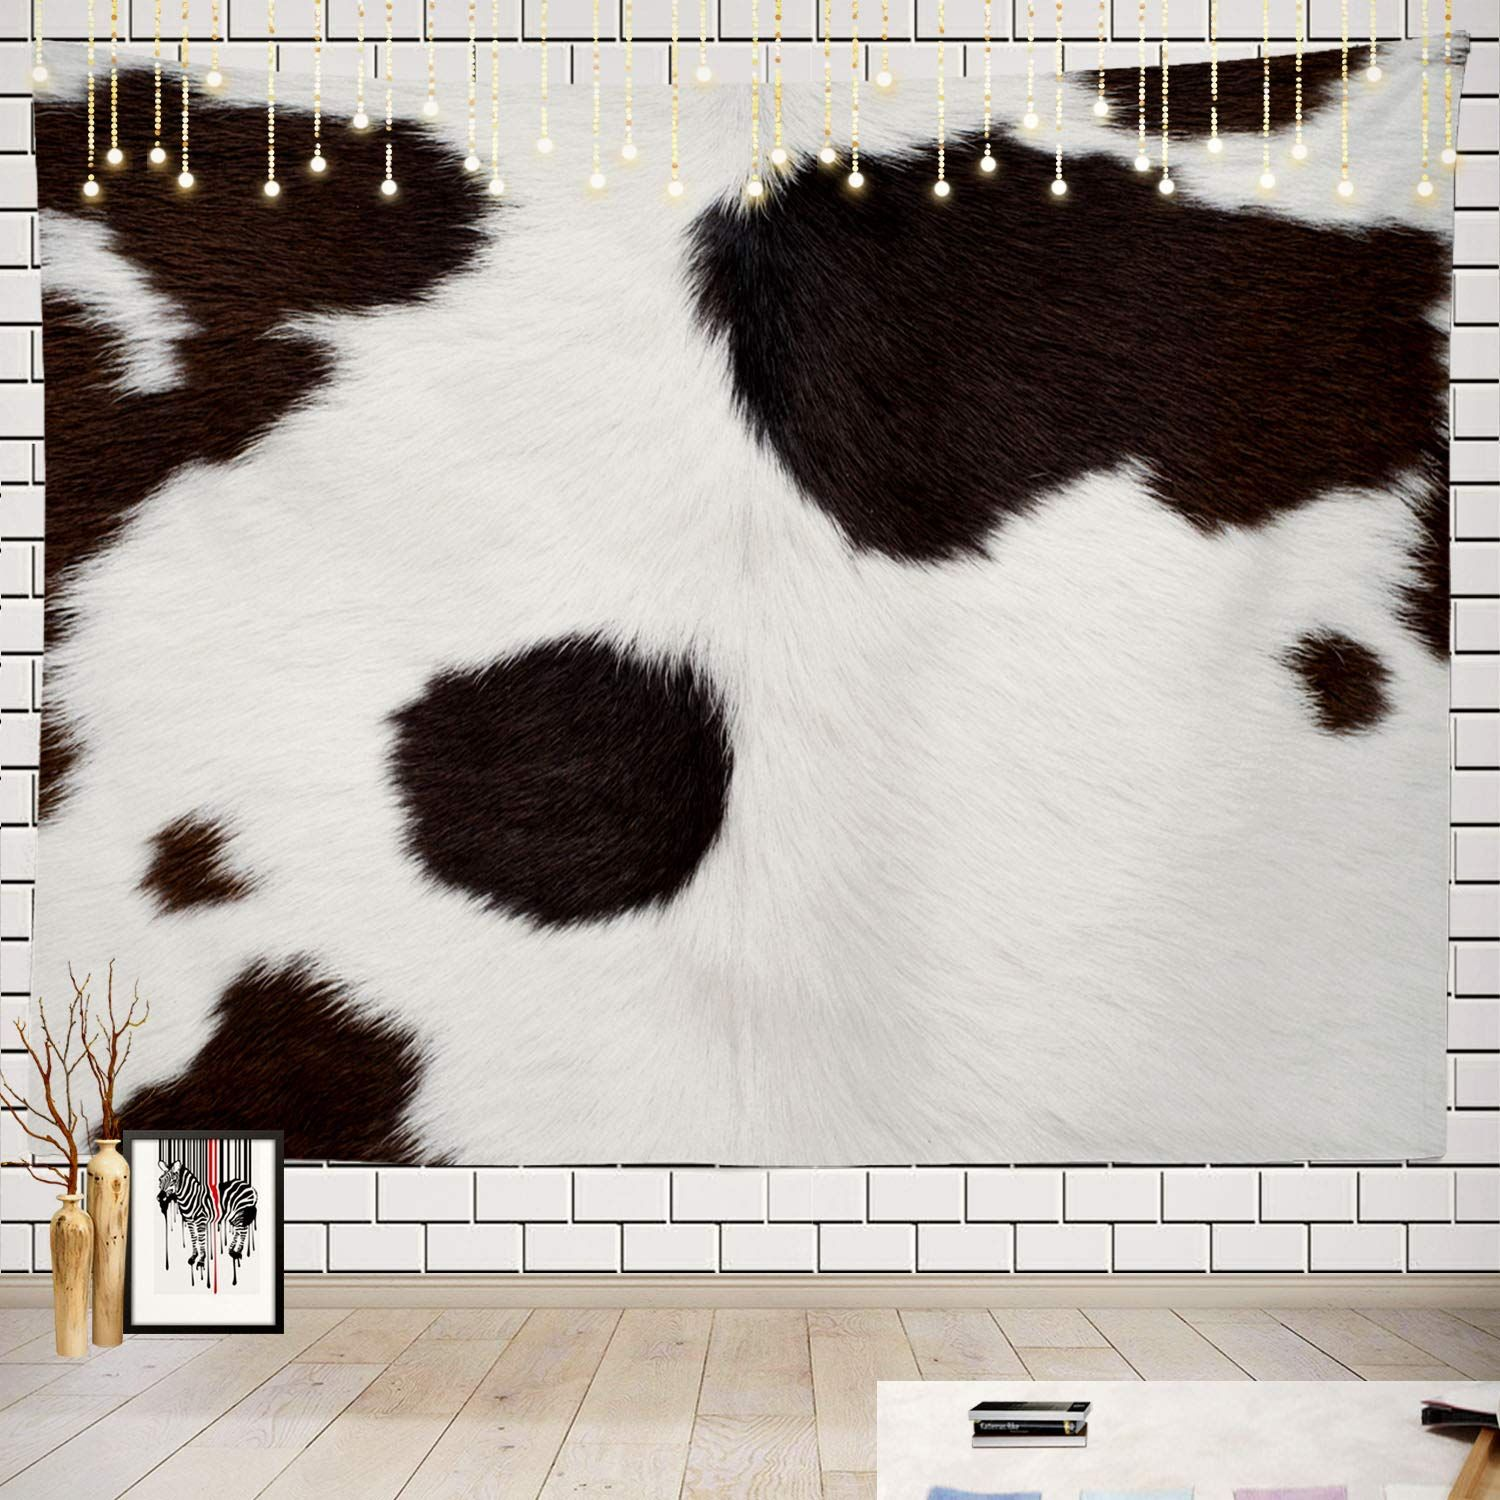 Batmerry Cow Tapestry Black And White Cow Hide Fabric Print Picnic Mat Hippie Trippy Tapestry Wall Art Medita In 2020 Tapestry Wall Art Trippy Tapestry Cowhide Fabric